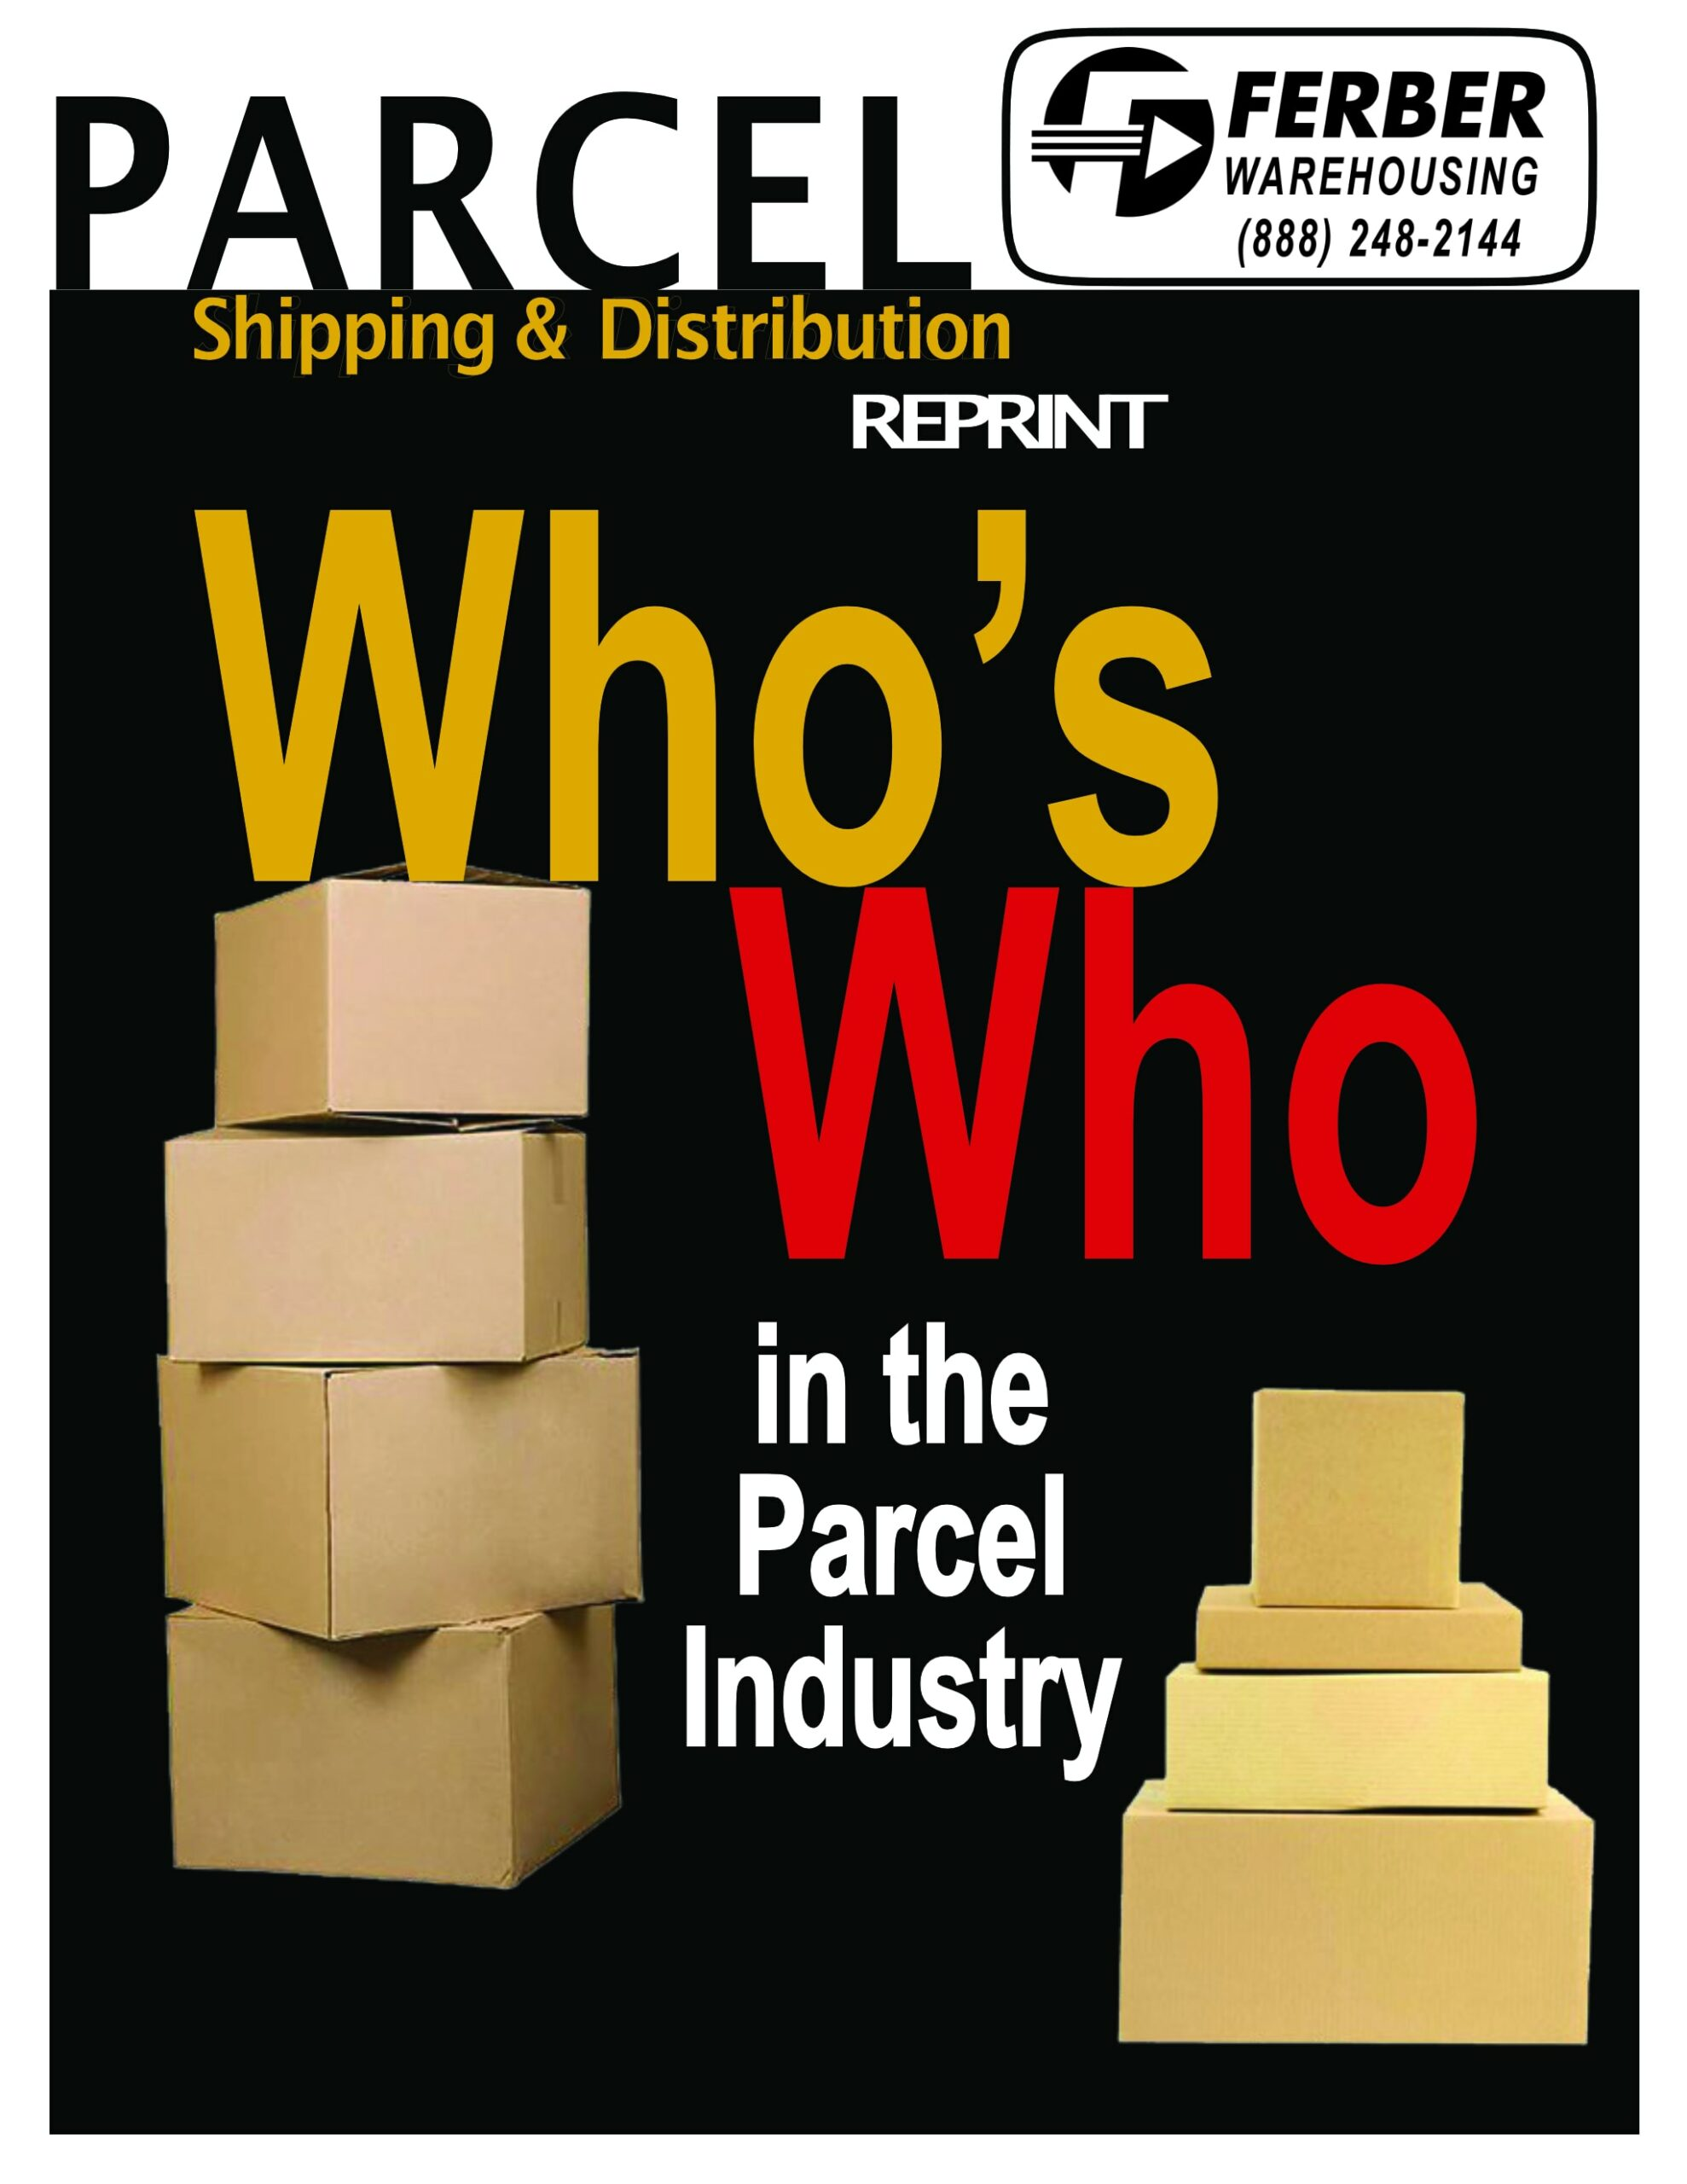 Who's Who in the Parcel Industry.